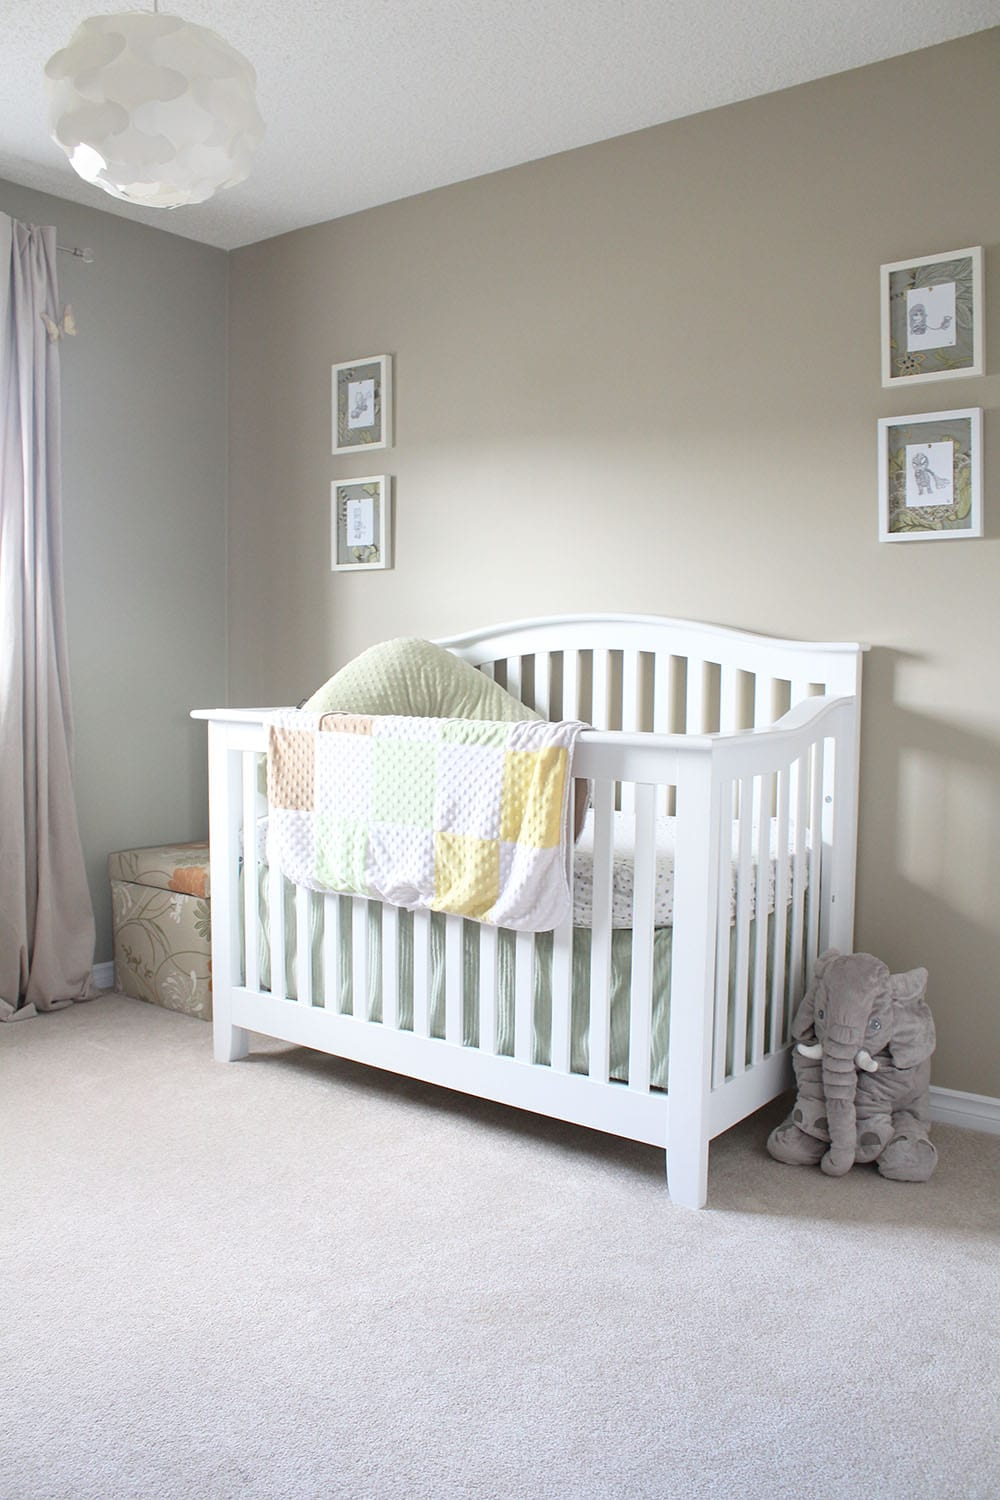 A neutral baby bedroom with a white crib and baby superhero art.